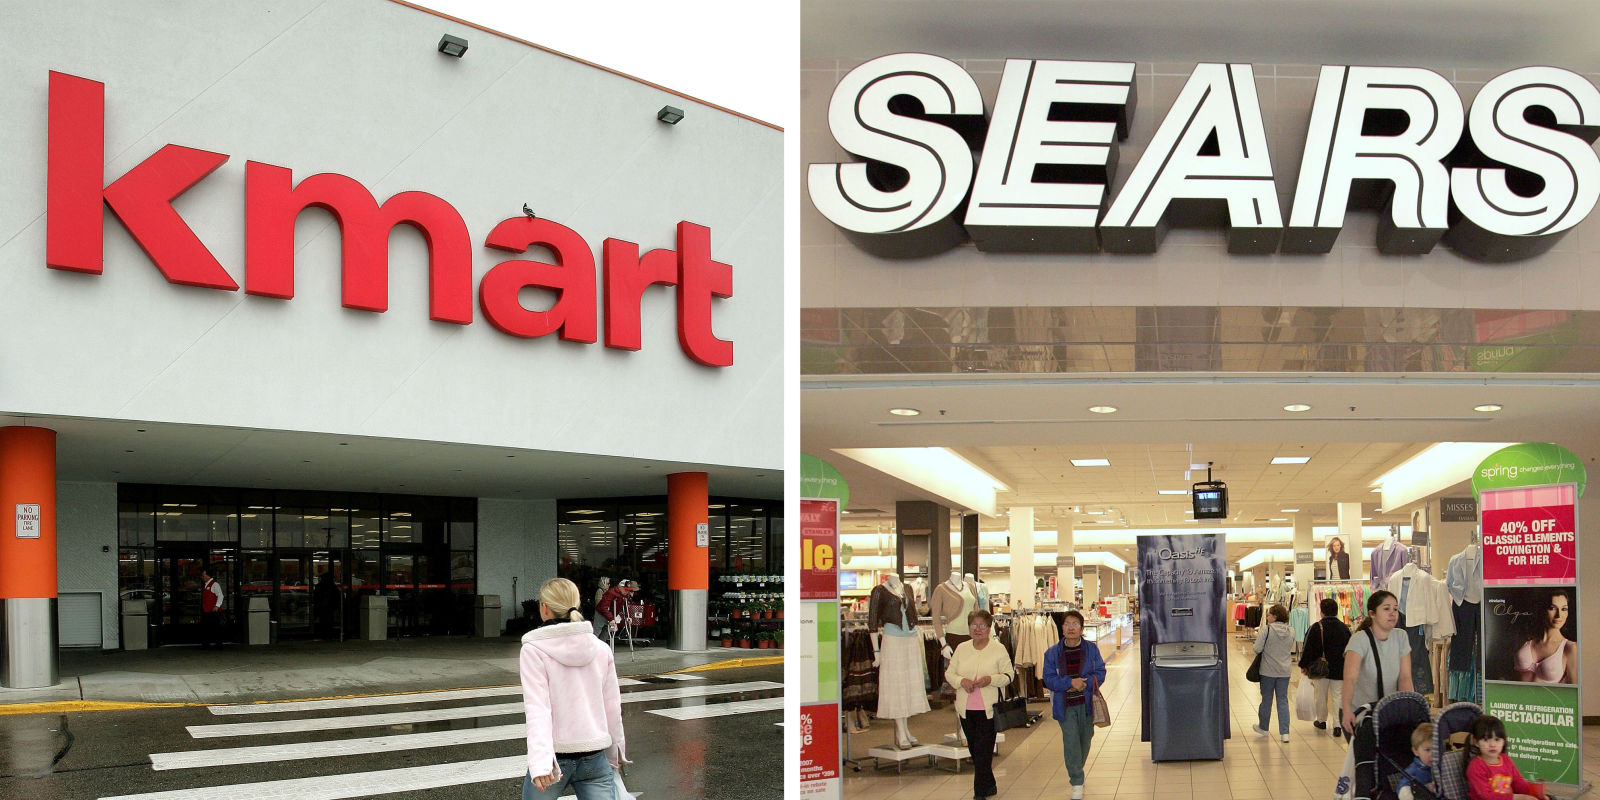 More Kmart and Sears Stores Closing - Which Kmart and ... - photo#26